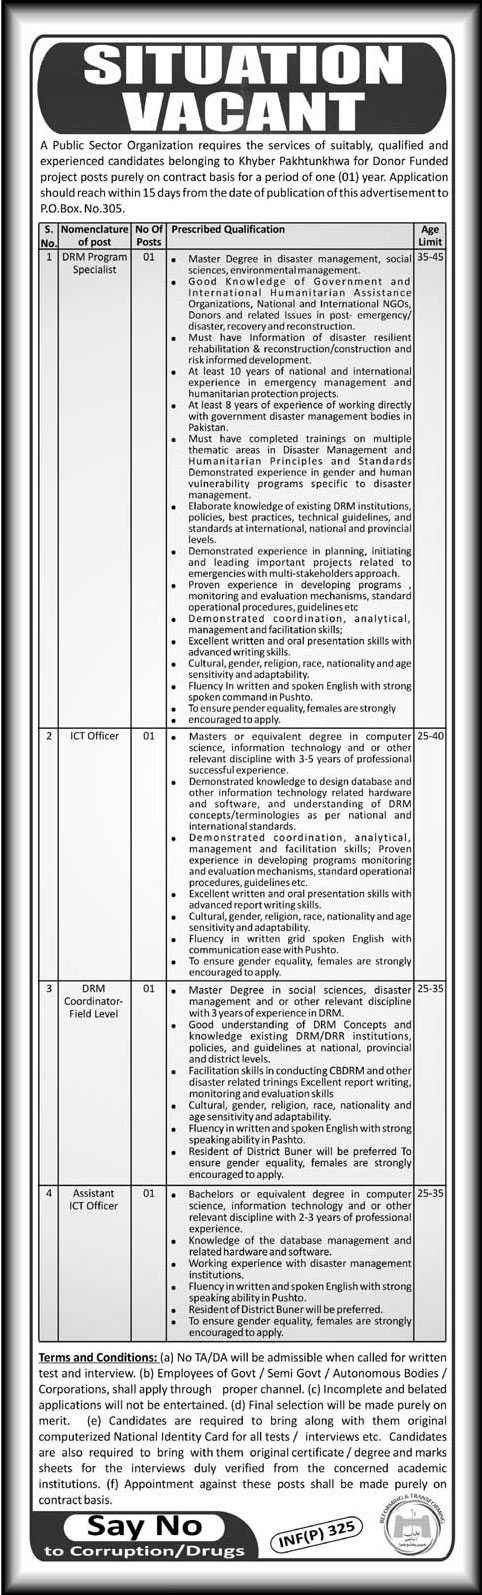 Jobs In Donor Funded Project 23 Jan 2018